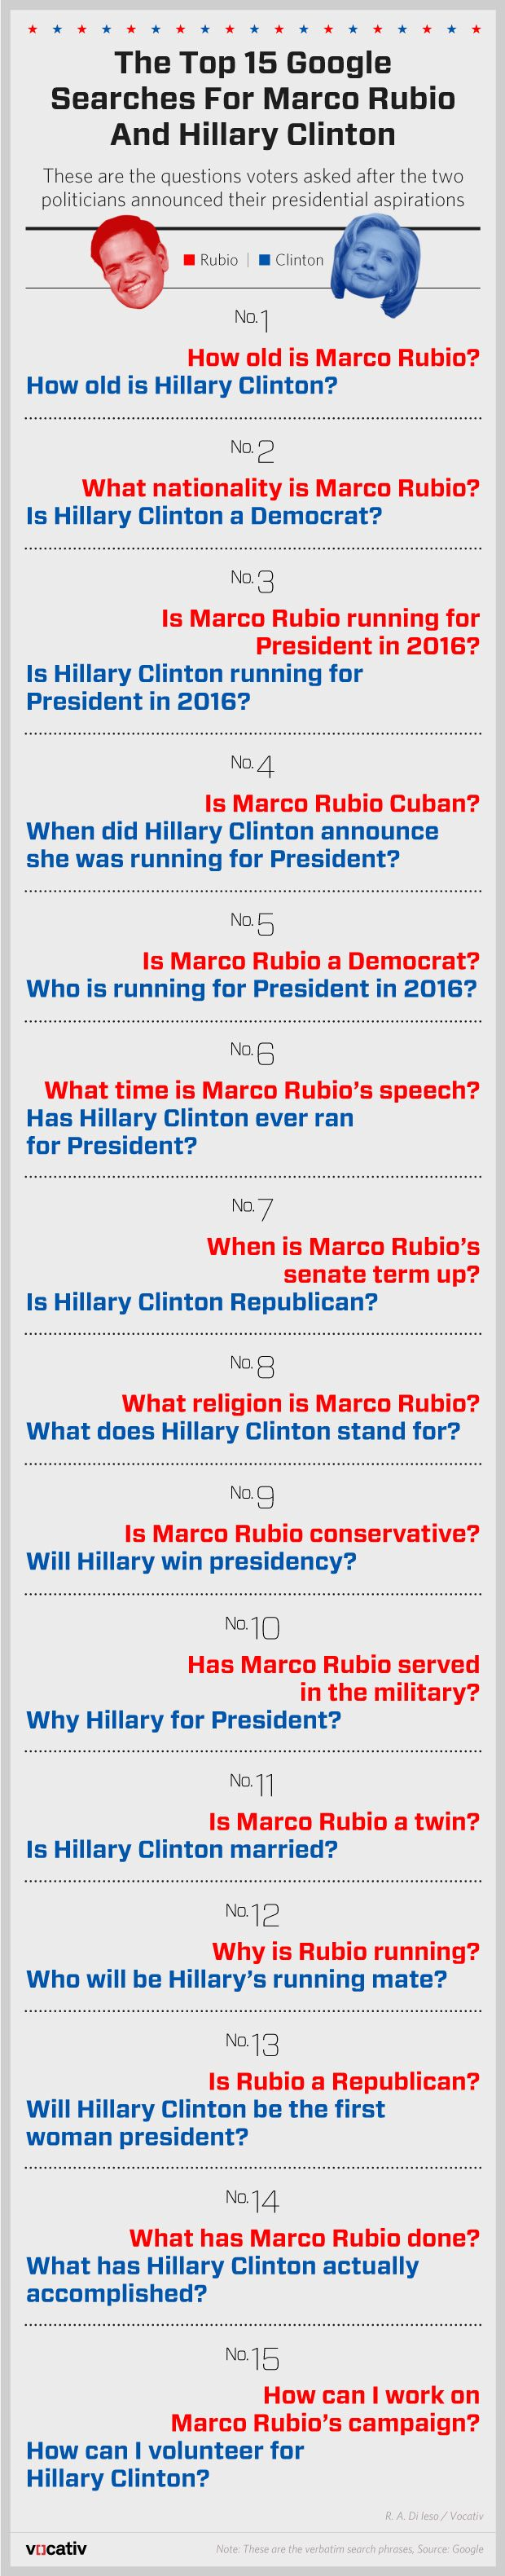 The Top Google Searches For Hillary Clinton And Marco Rubio - Hillary's top search is How old is Hillary Clinton?